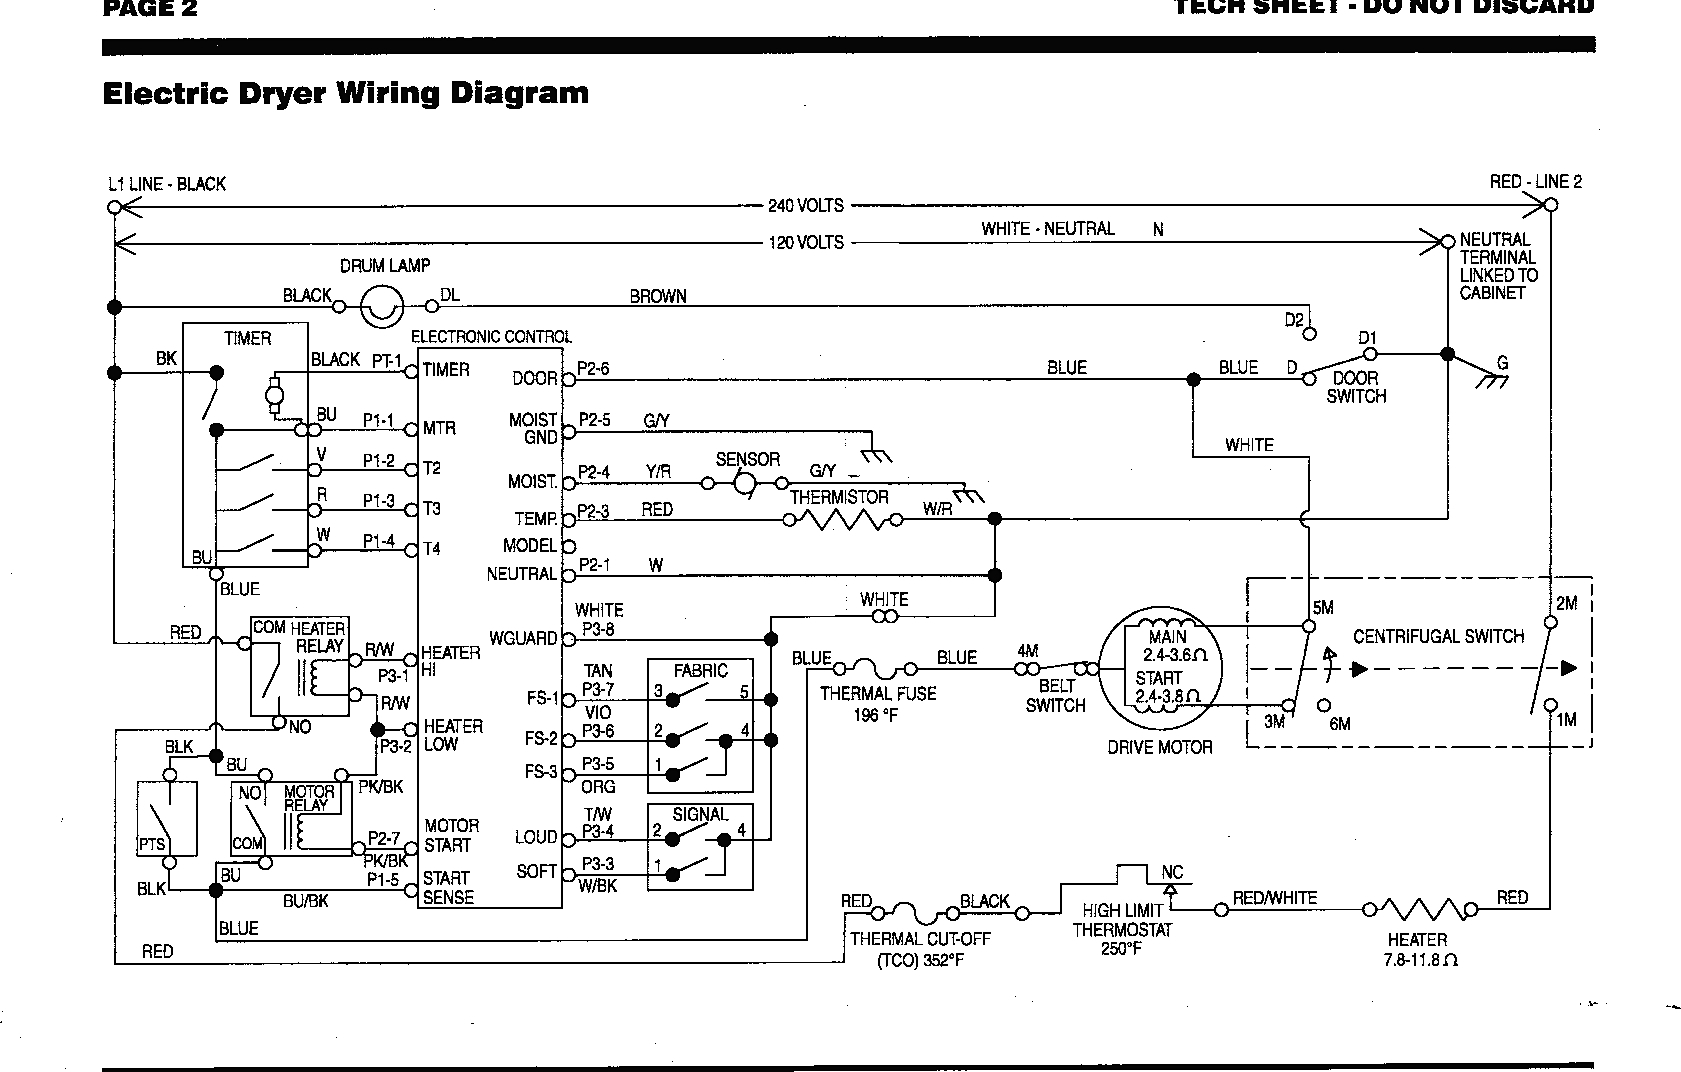 kenmore dryer wiring diagram Download-Whirlpool Dryer Wiring Diagram Preisvergleich Kenmore Dryer thermostat Wiring Diagram Image 15-f